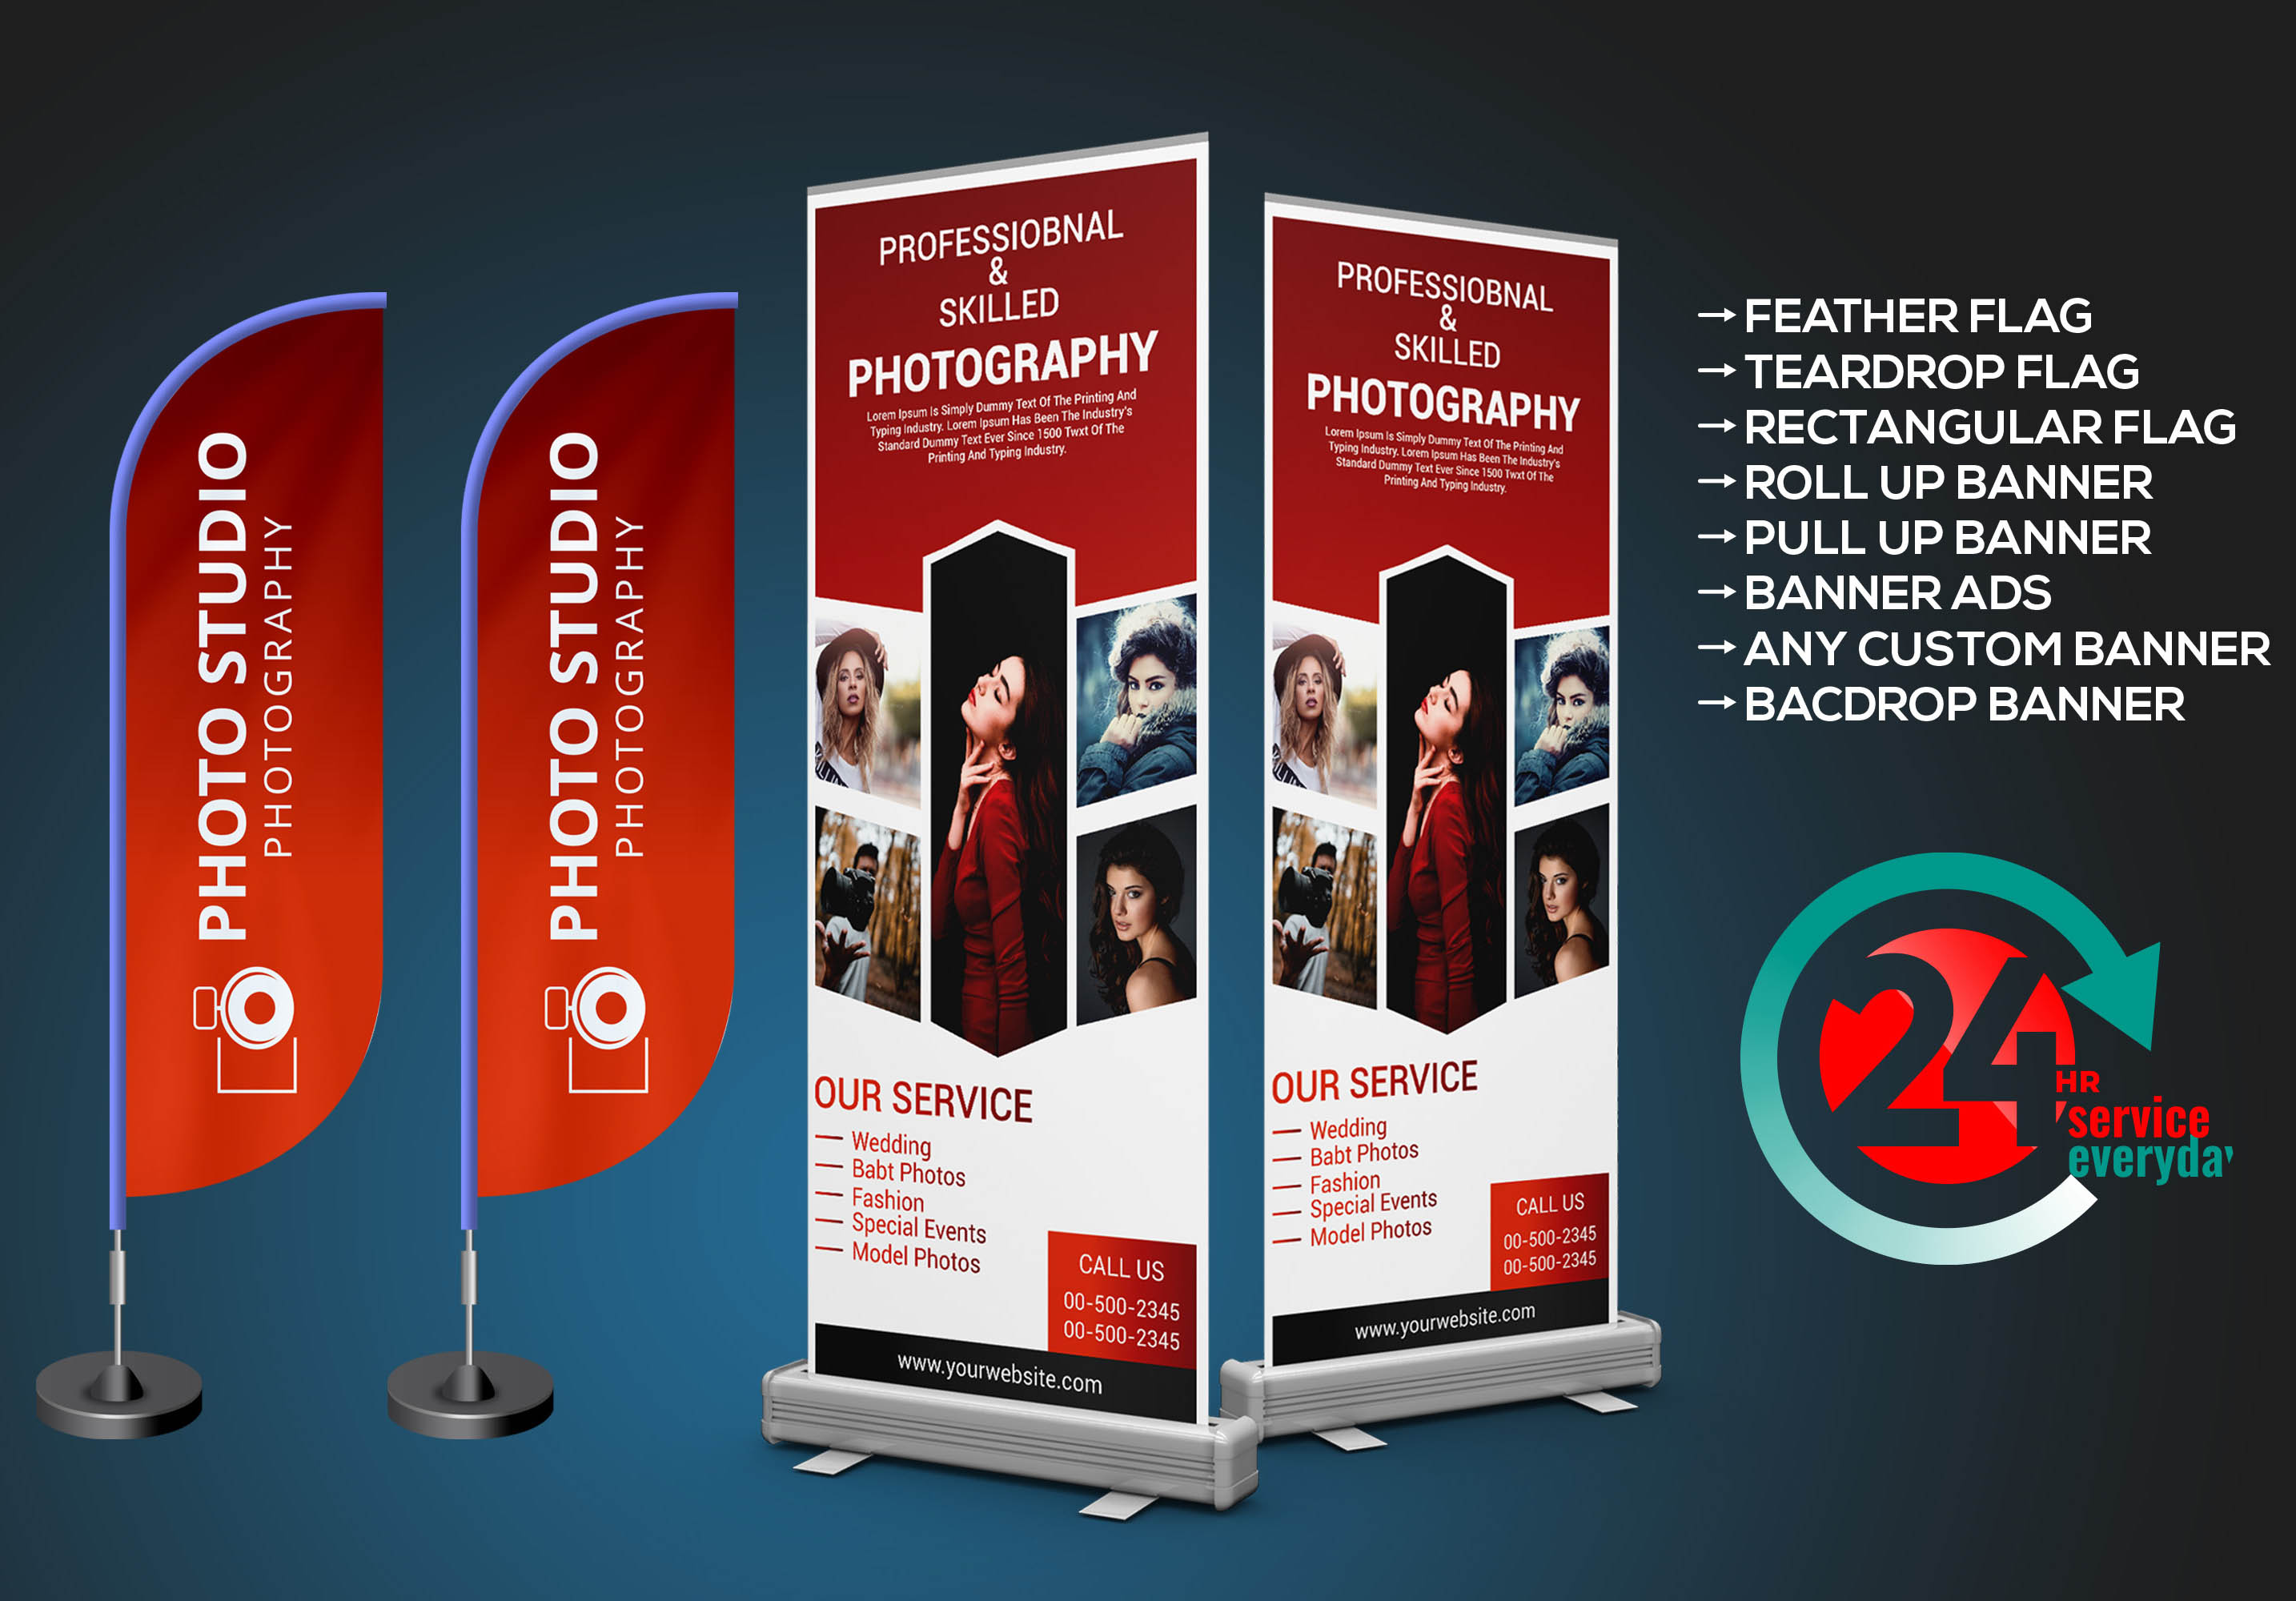 I will design retractable roll up banner, tear drop, feather flag in 4 hours